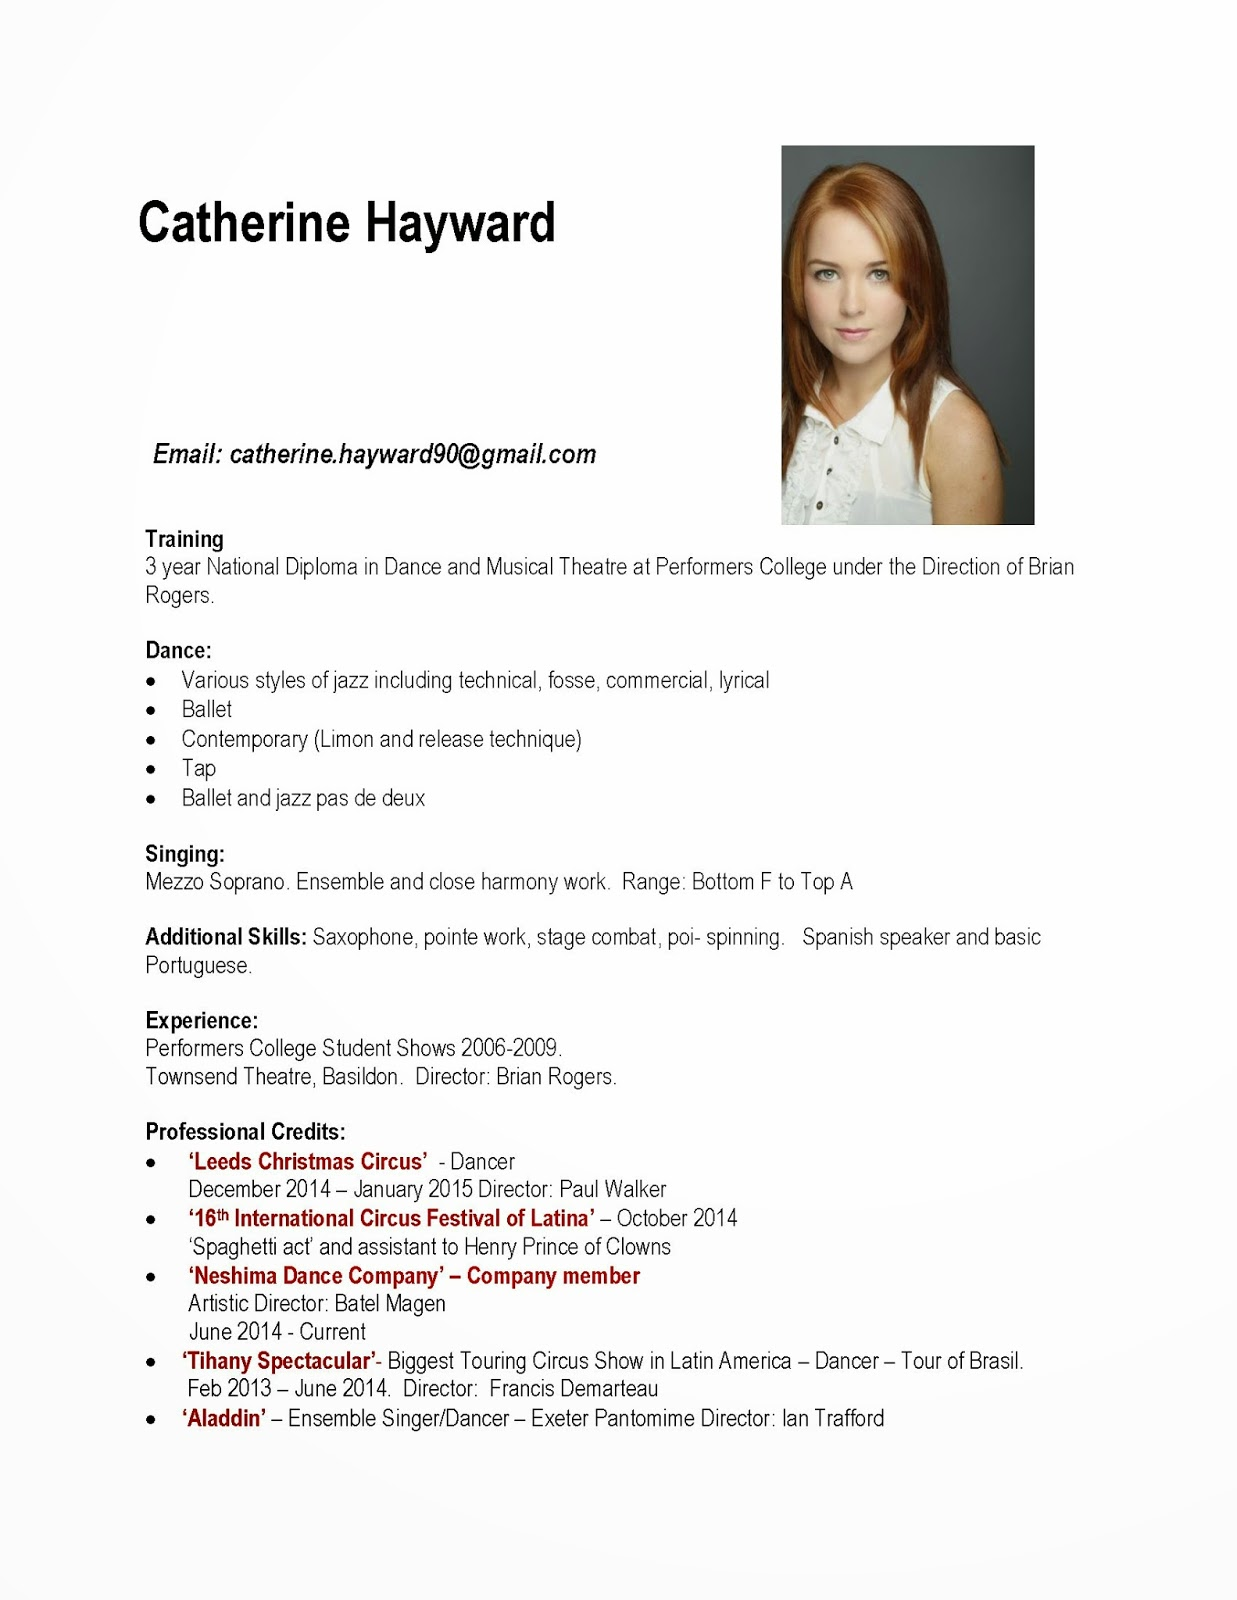 Catherine Hayward Professional Practice Arts Task 1A